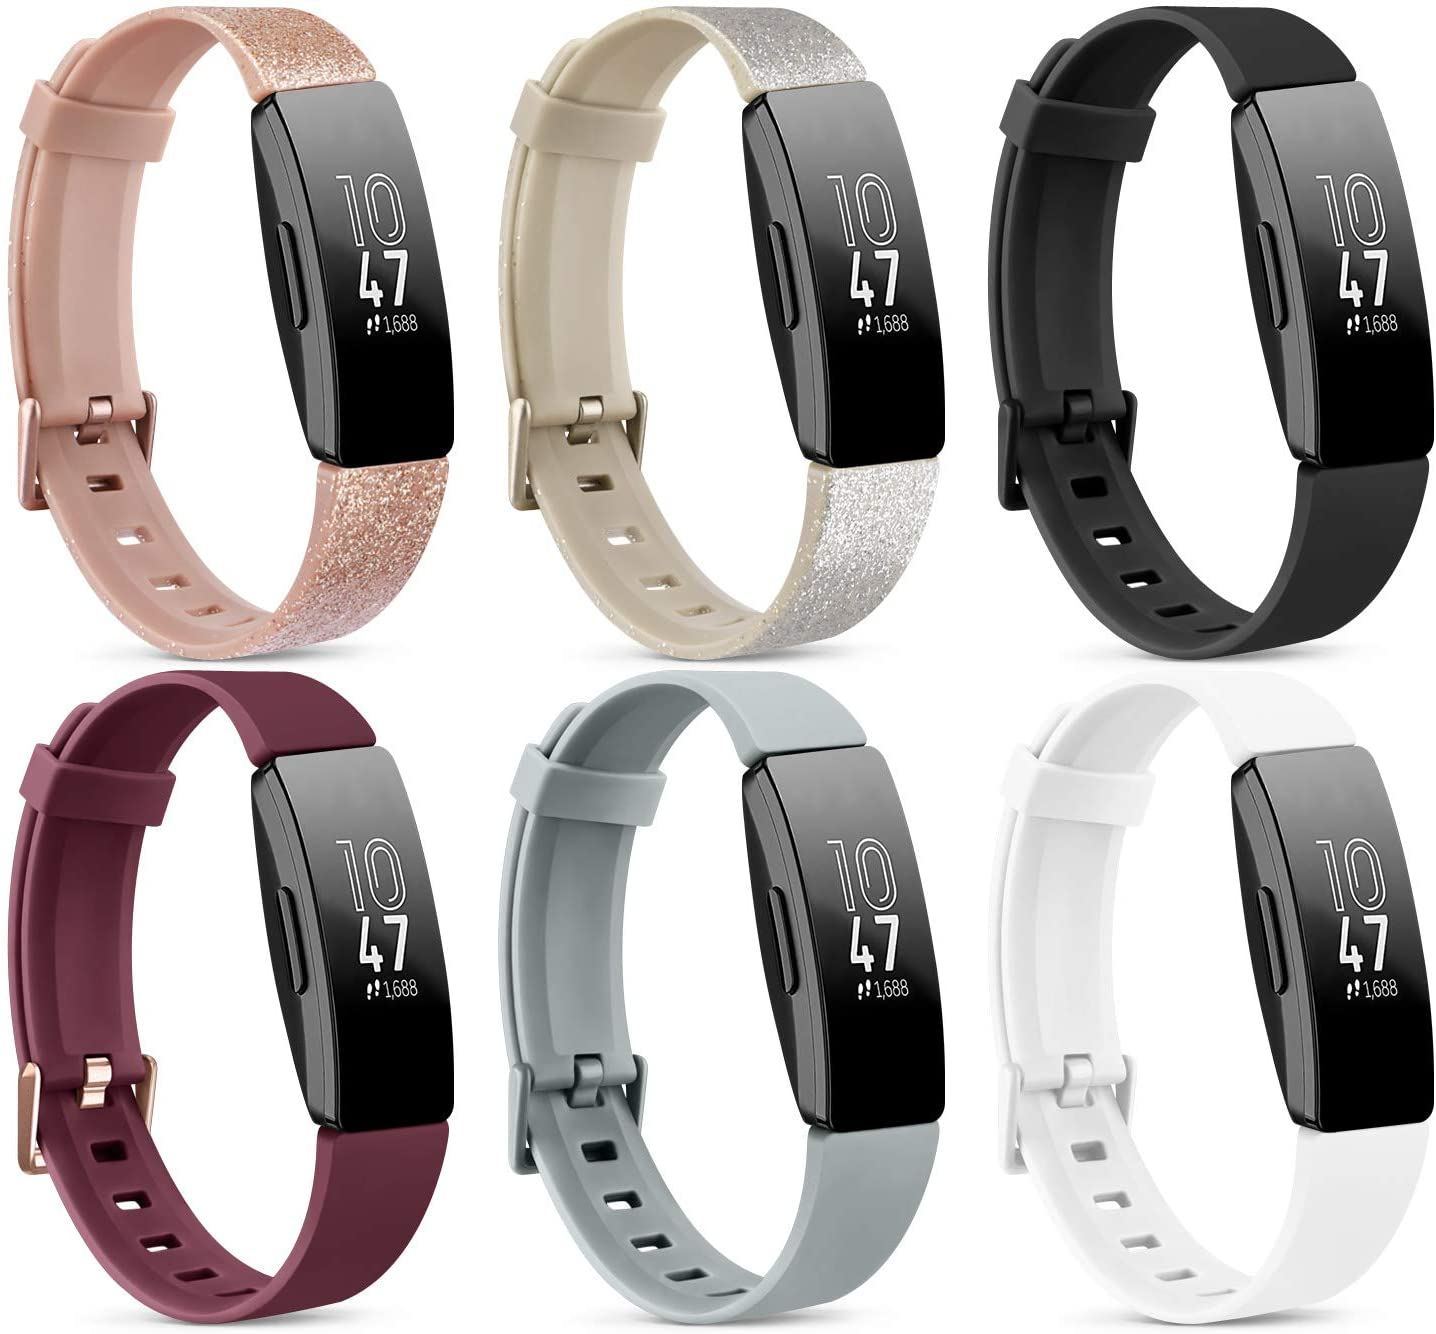 [6 Pack] Silicone Bands Compatible with Fitbit Inspire HR & Fitbit Inspire 2 & Fitbit Inspire & Ace 2 Bands for Women Men (Small, Shine Rosegold/Shine Gold/Wine Red/Black/Gray/White)